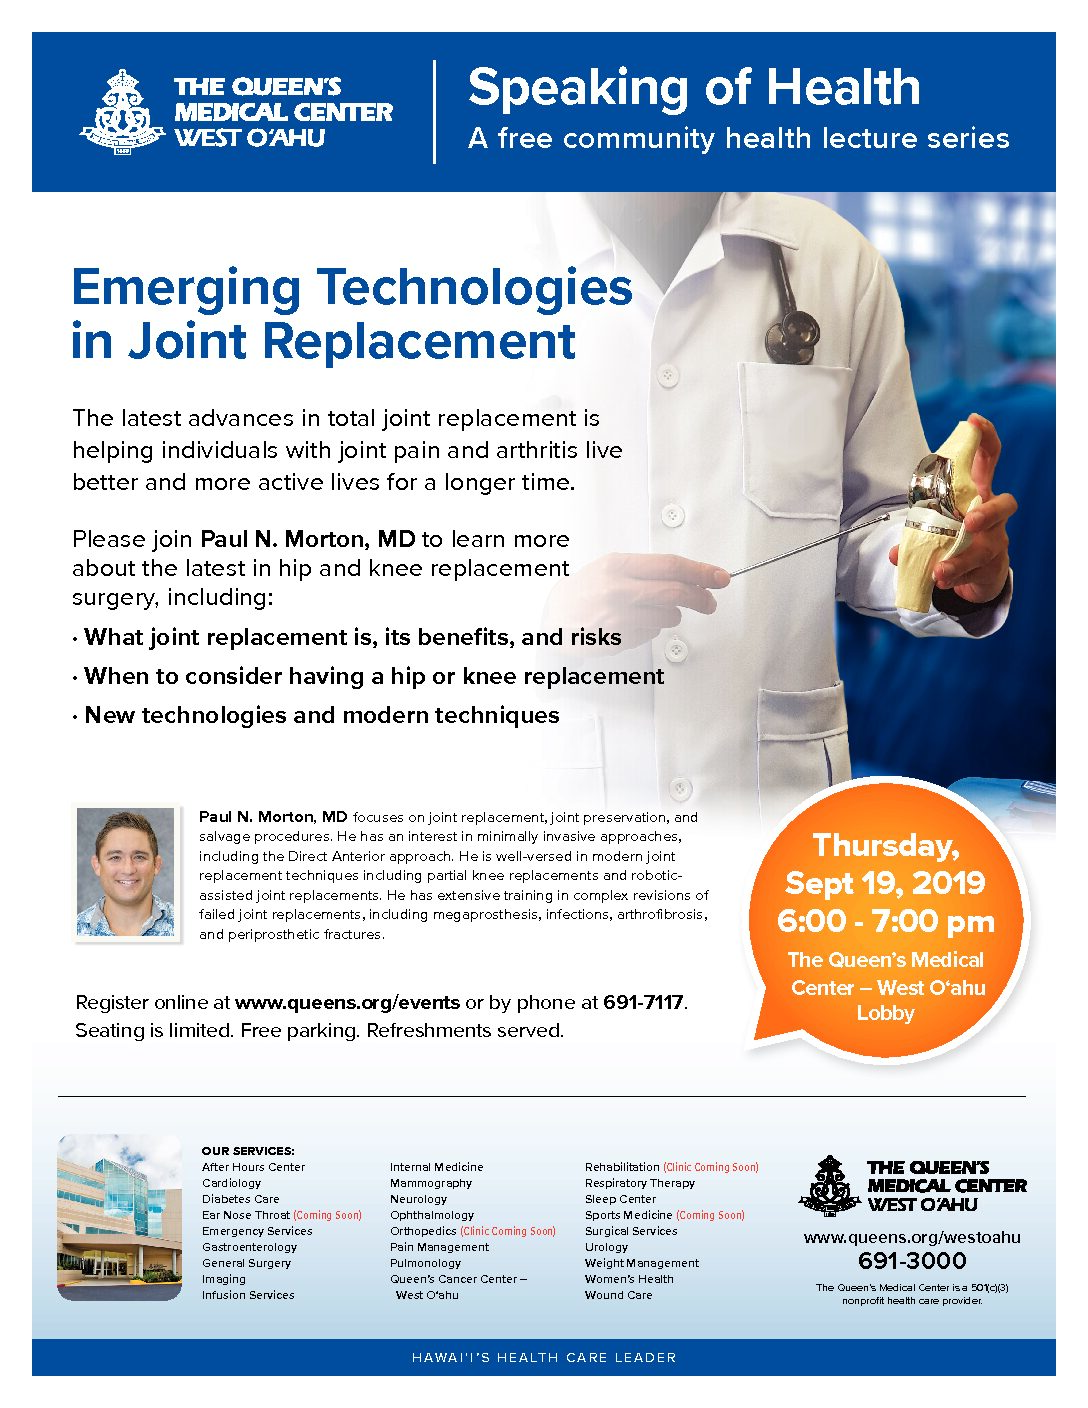 Register for Emerging Technologies in Joint Replacement Event 4